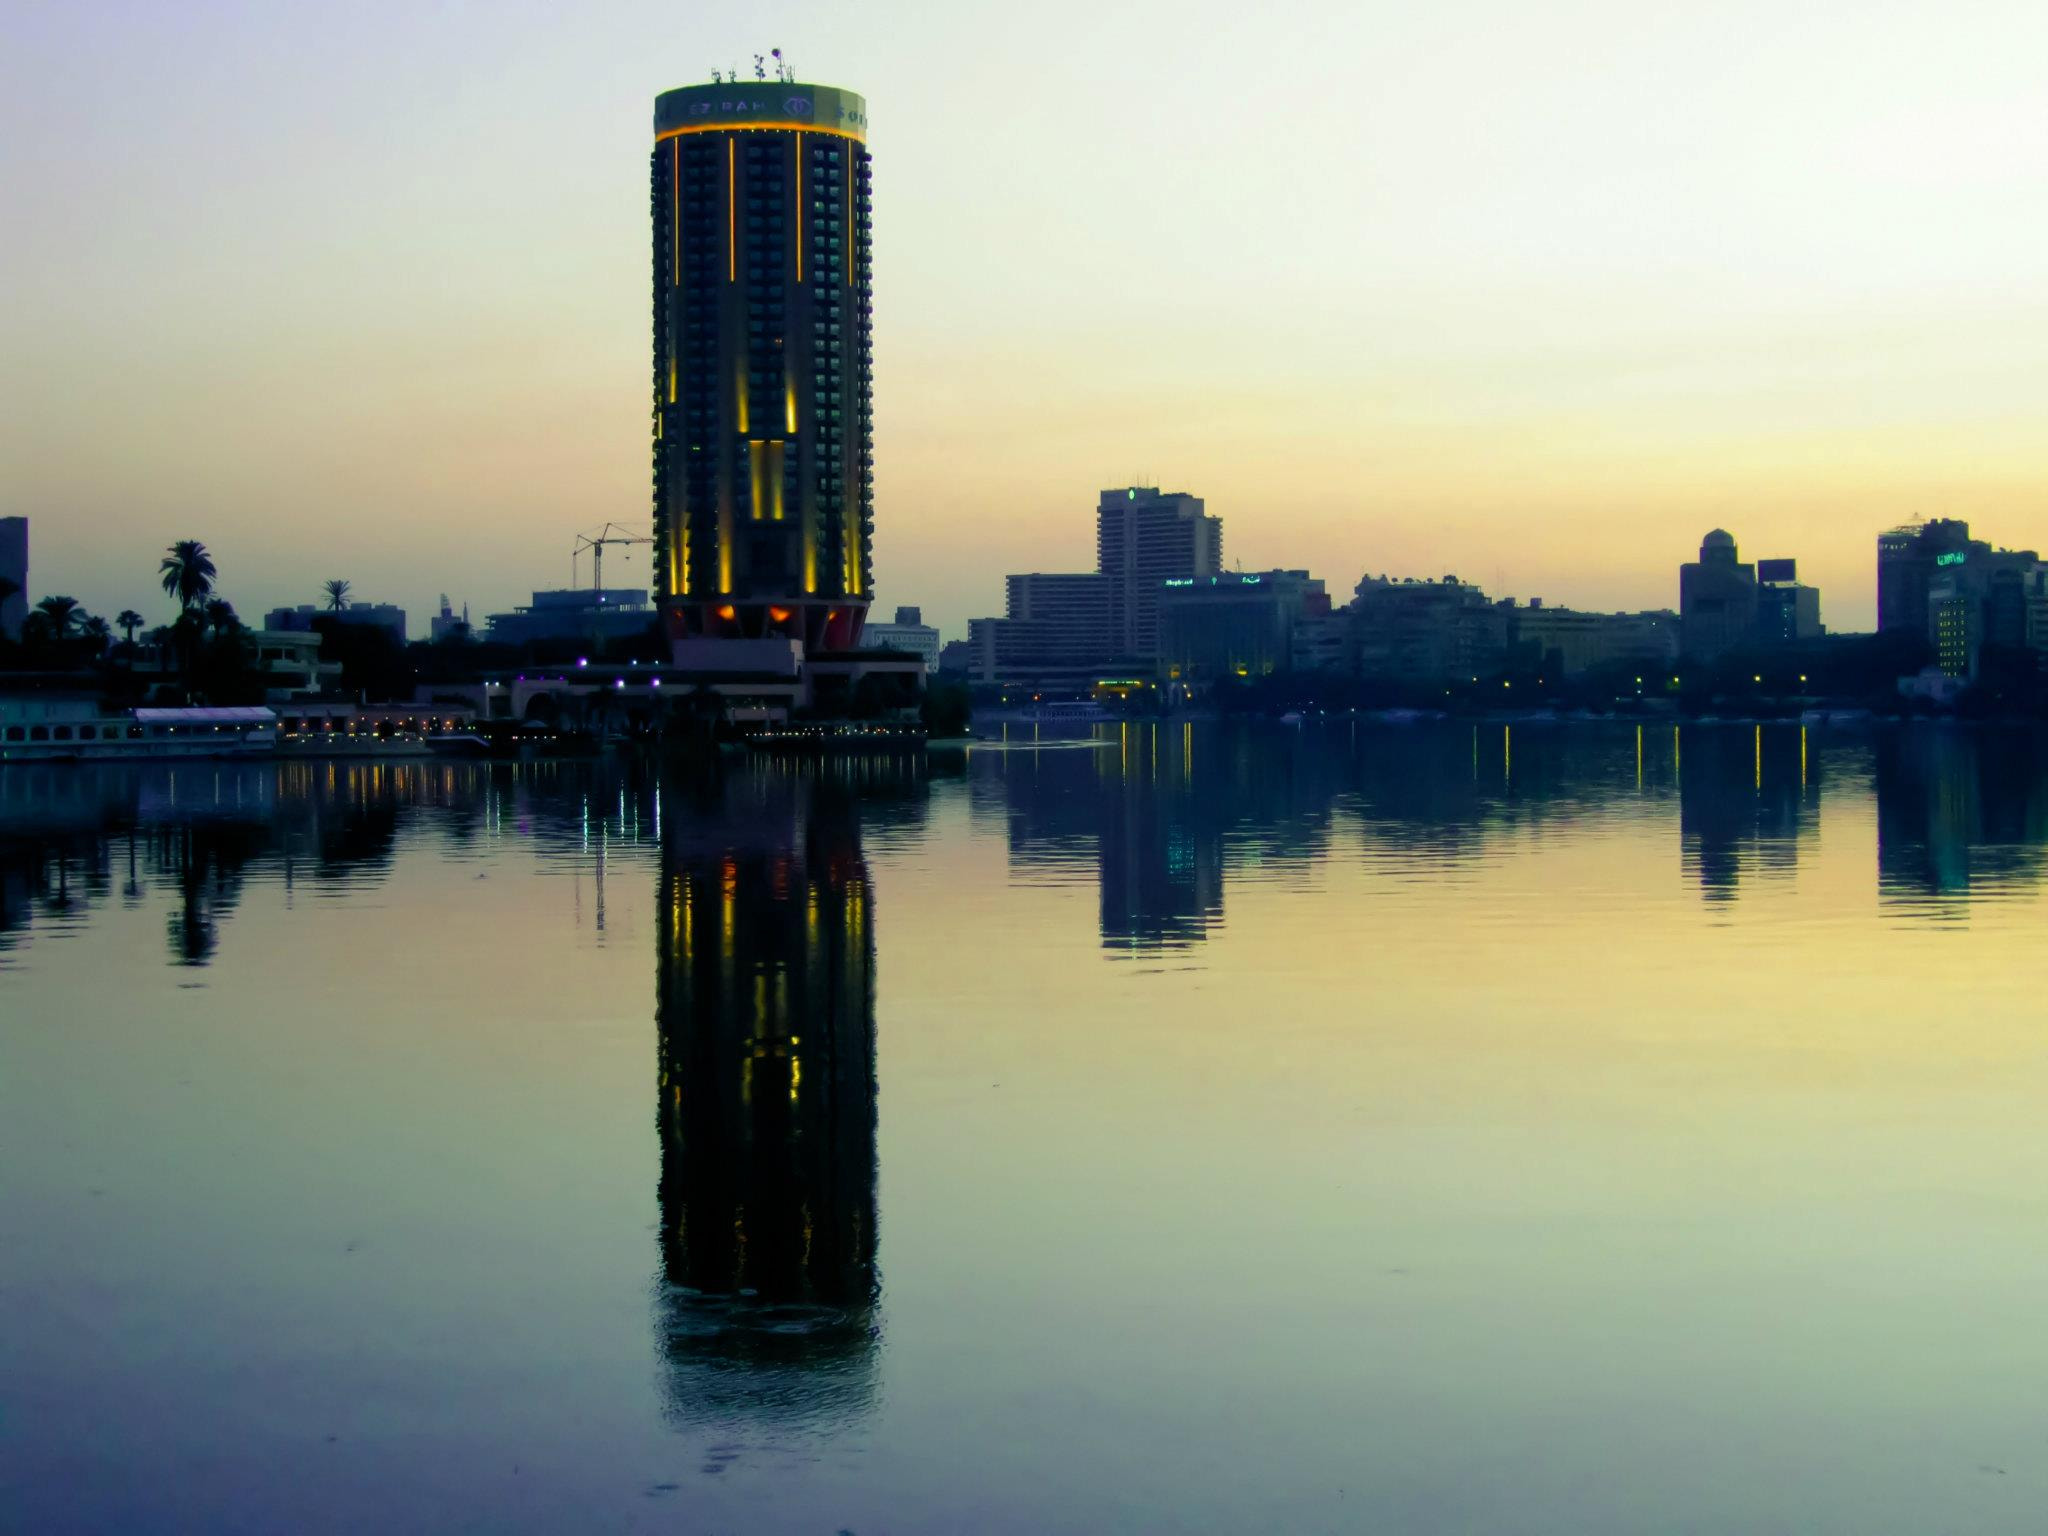 Photograph River Nile 2 by Ahmed Hussain on 500px